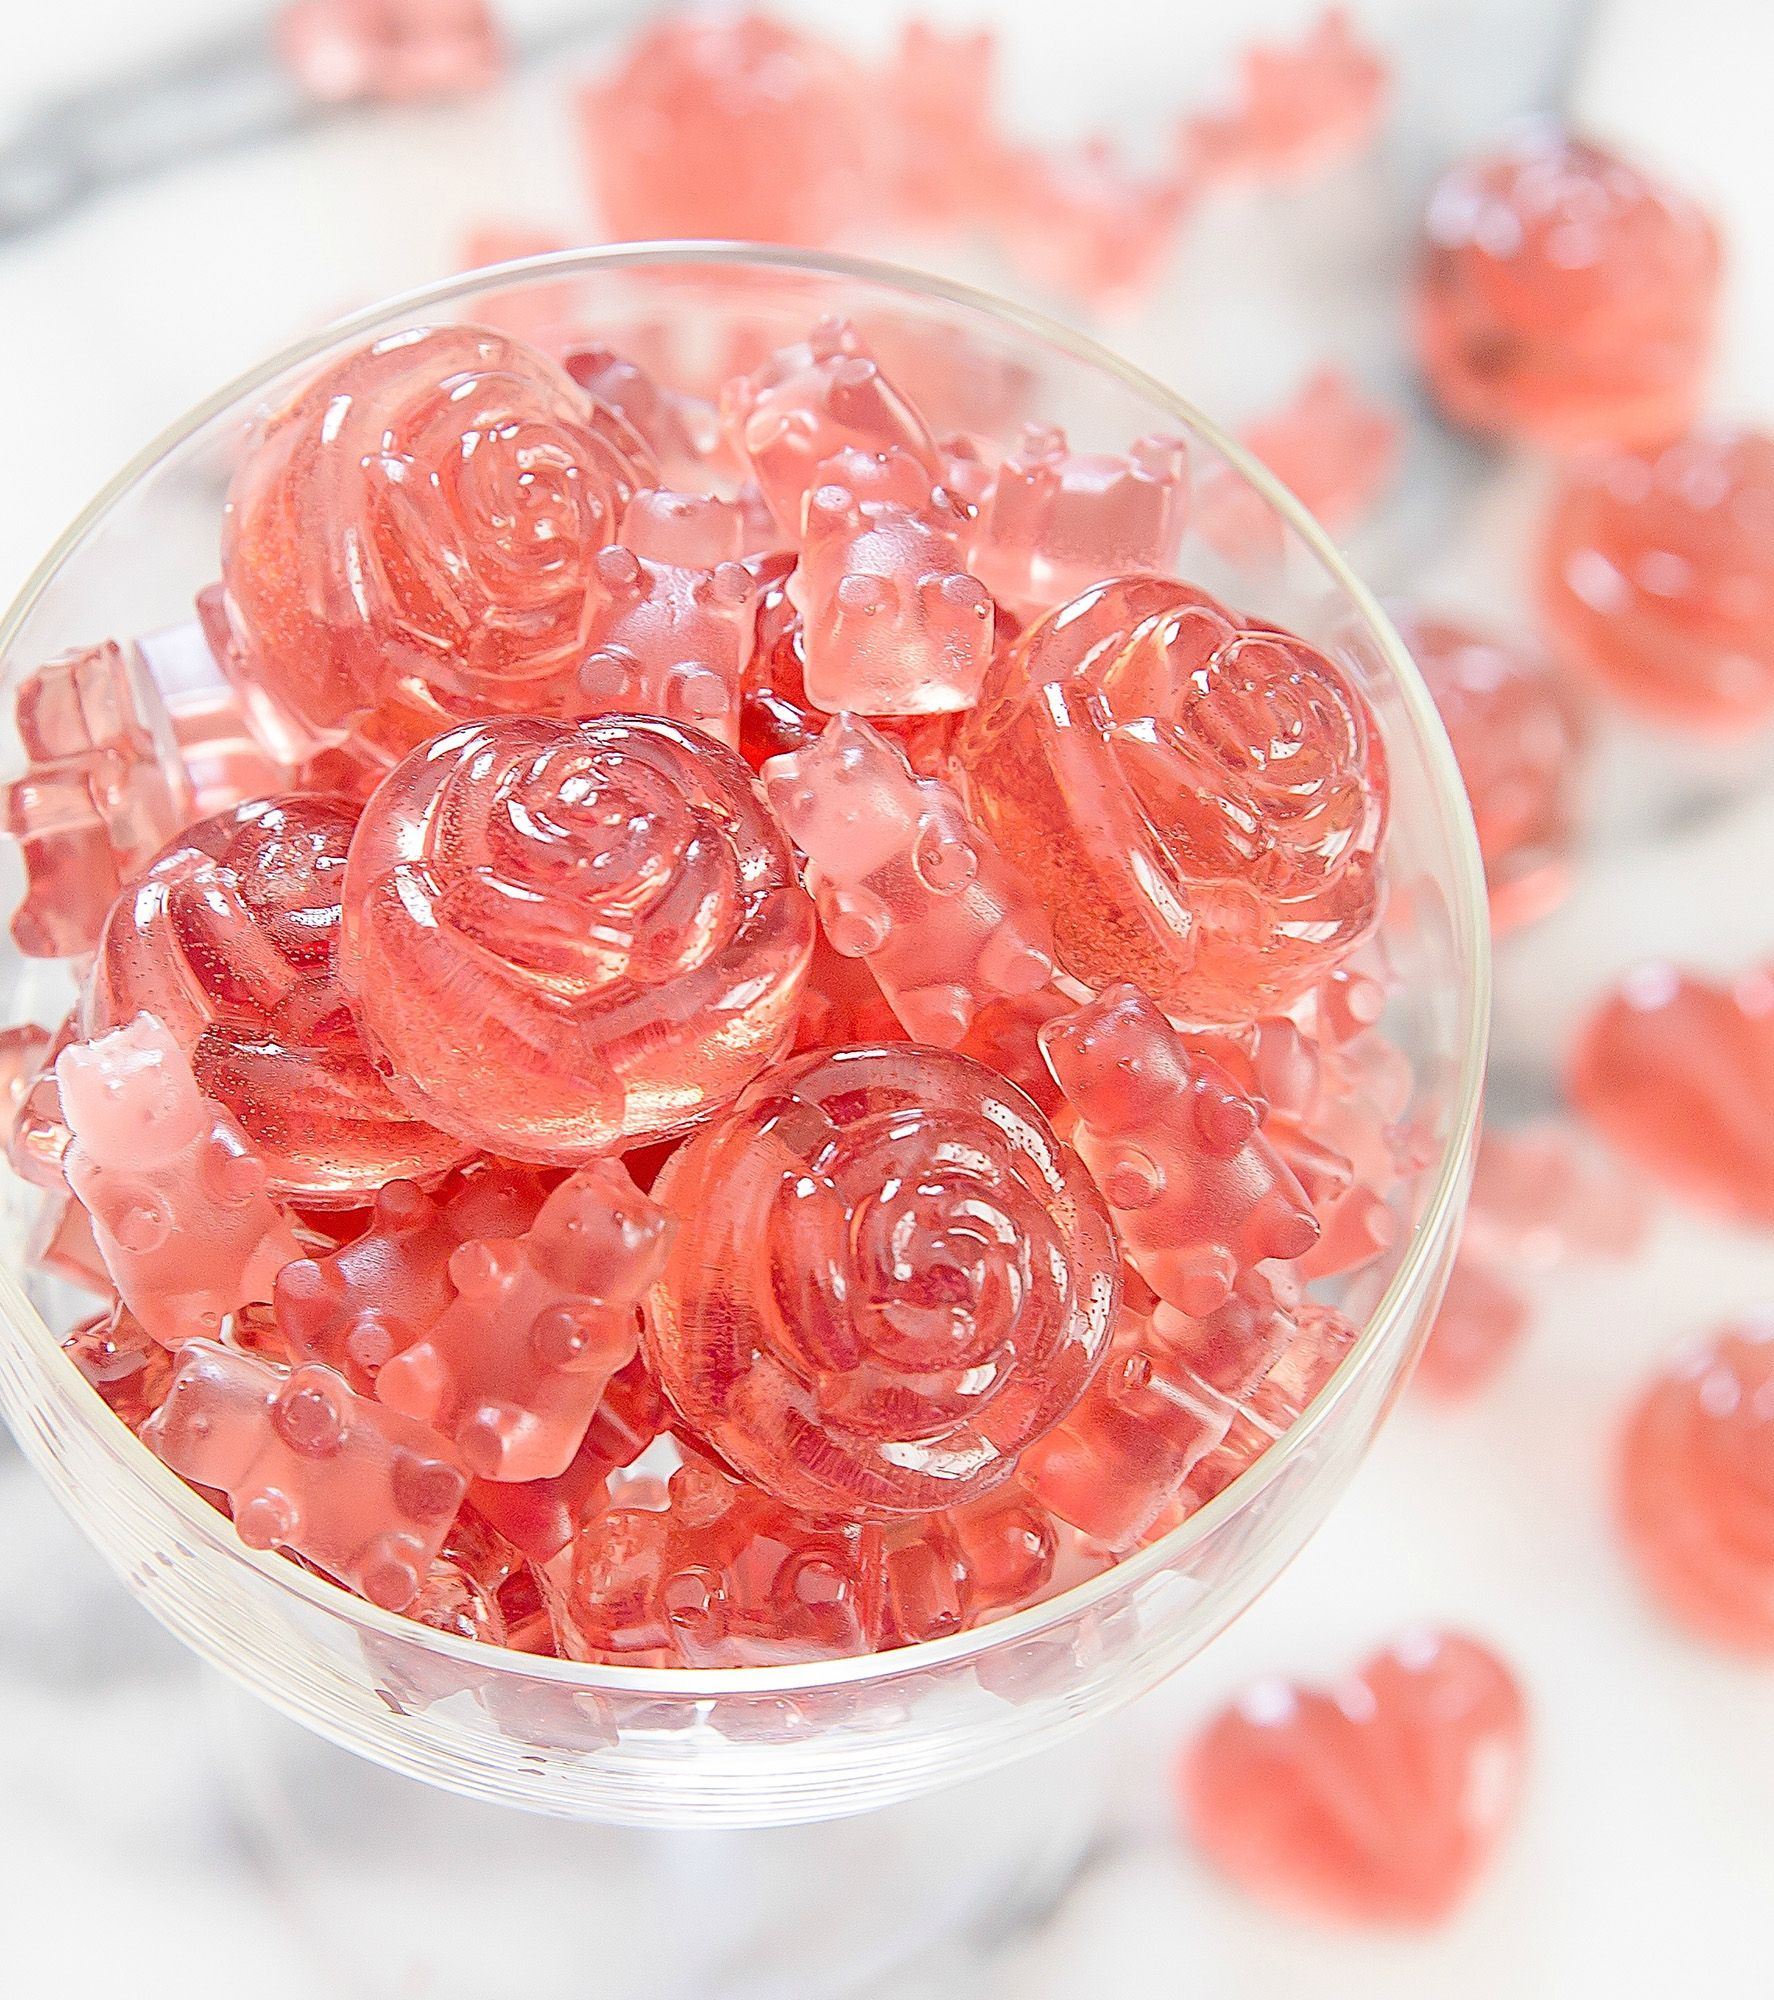 10 Ways To Have Your Rose And Eat It Too Champagne Gummy Bears Wine Flavors Homemade Gummy Bears